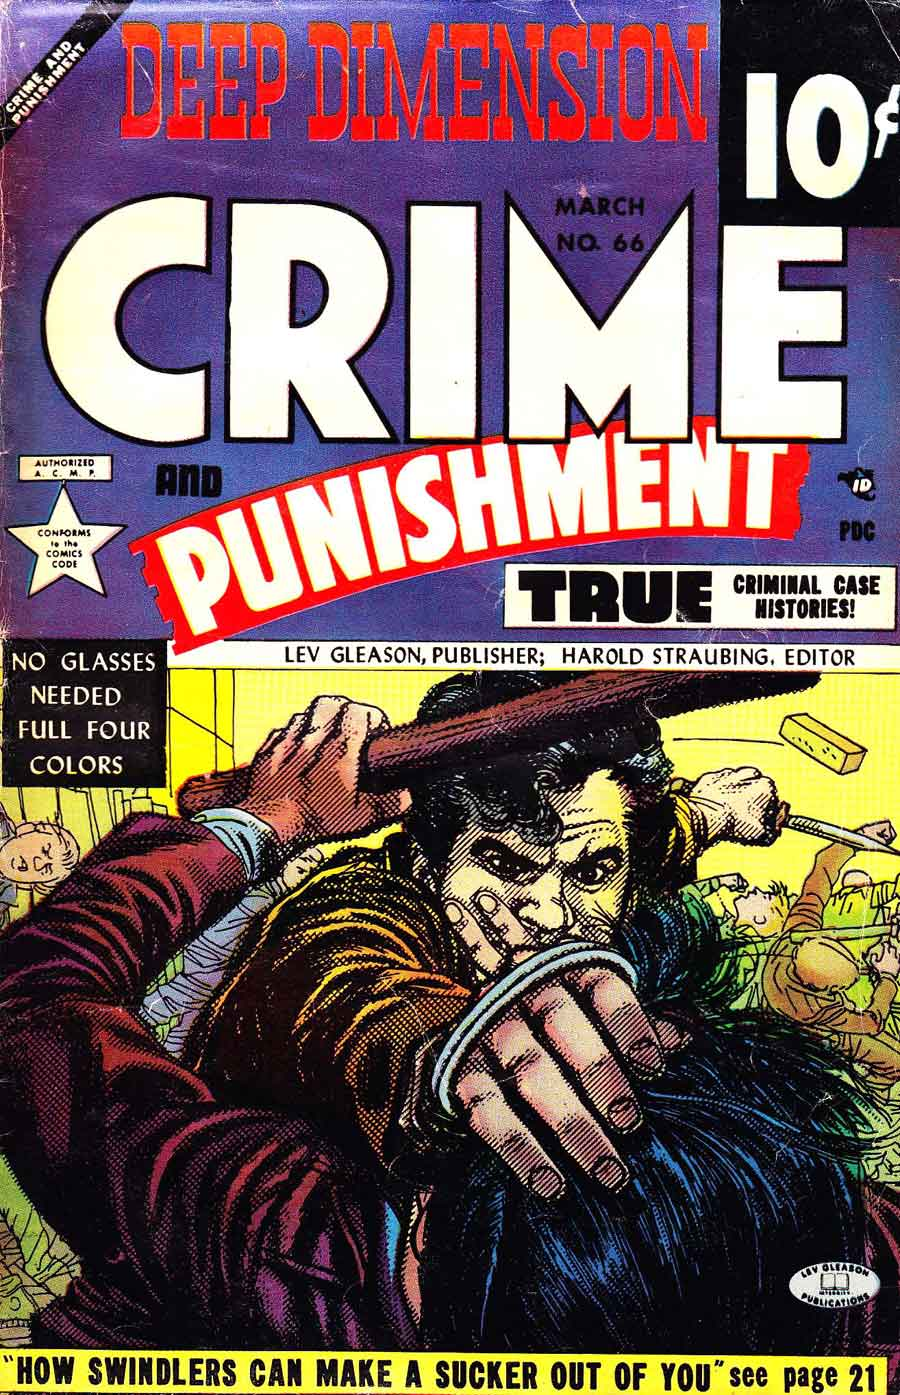 Crime and Punishment v1 #66 golden age crime comic book cover art by Alex Toth